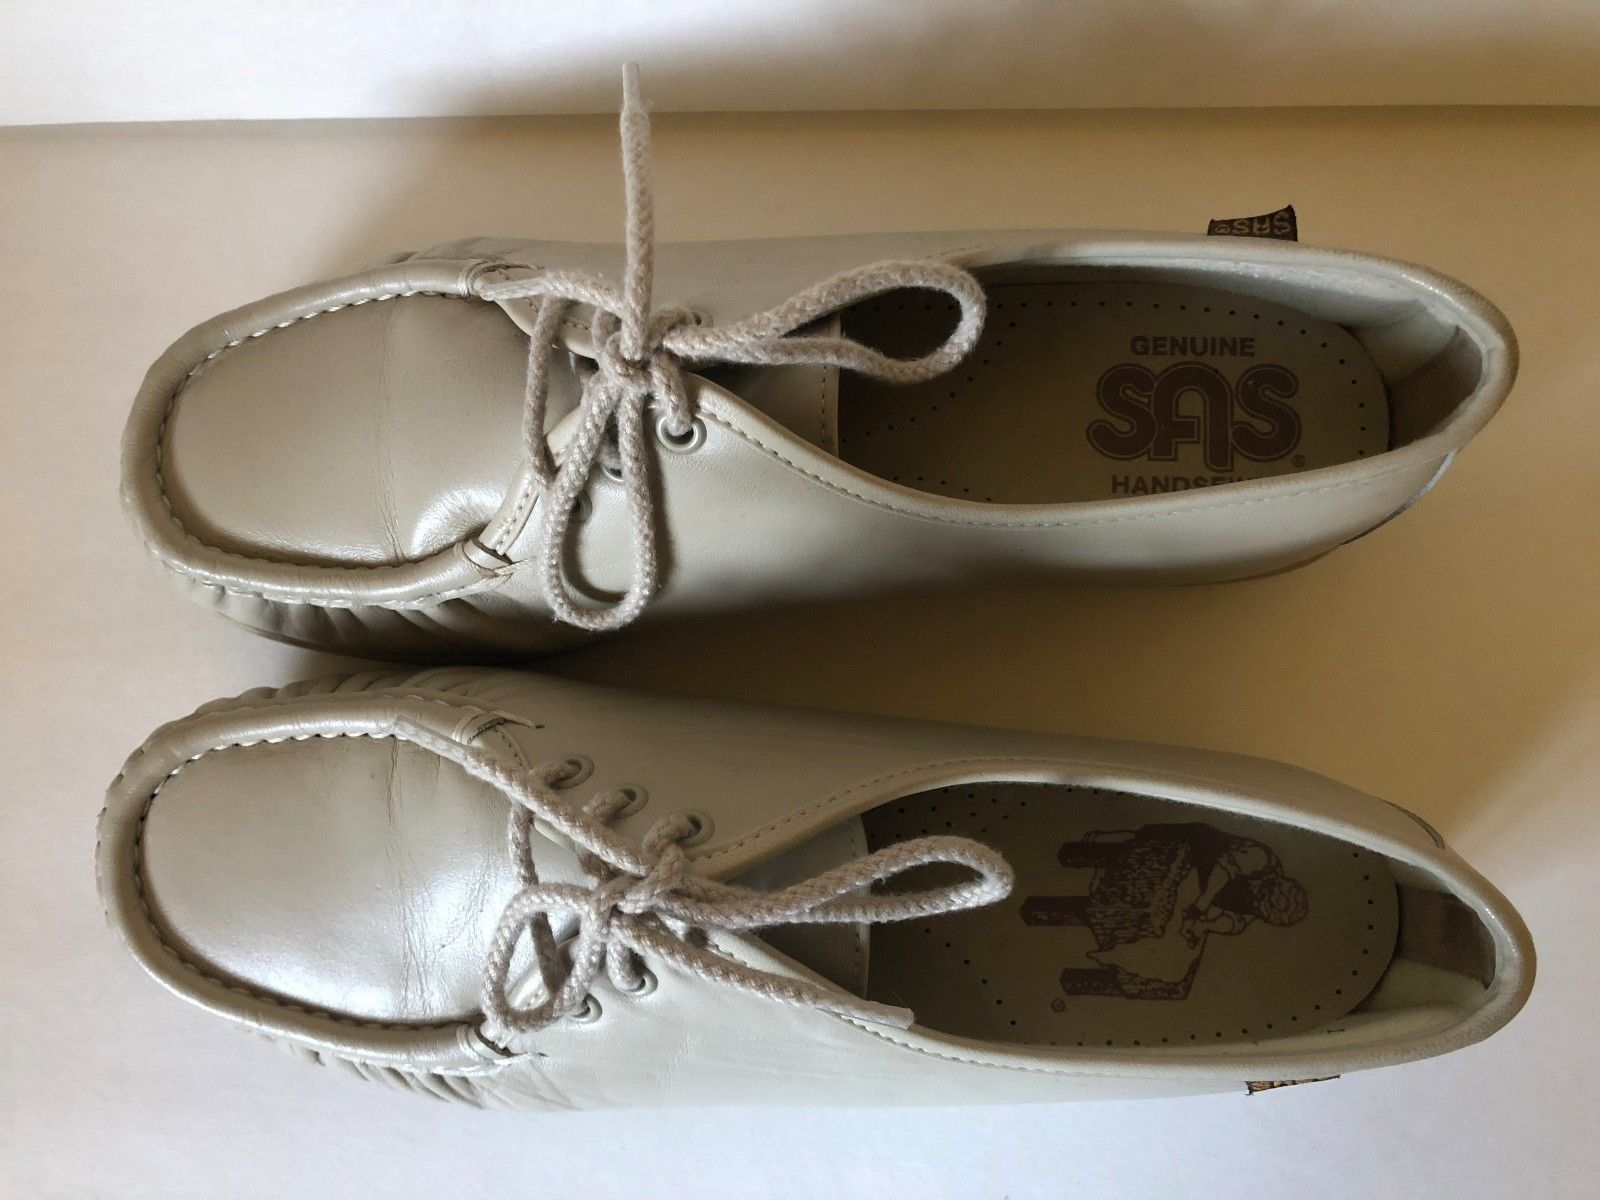 c2b96d7aed9a2c S l1600. S l1600. Previous. Genuine SAS Comfort Shoes Handsewn Leather Oxford  Lace Up Loafers Size ...